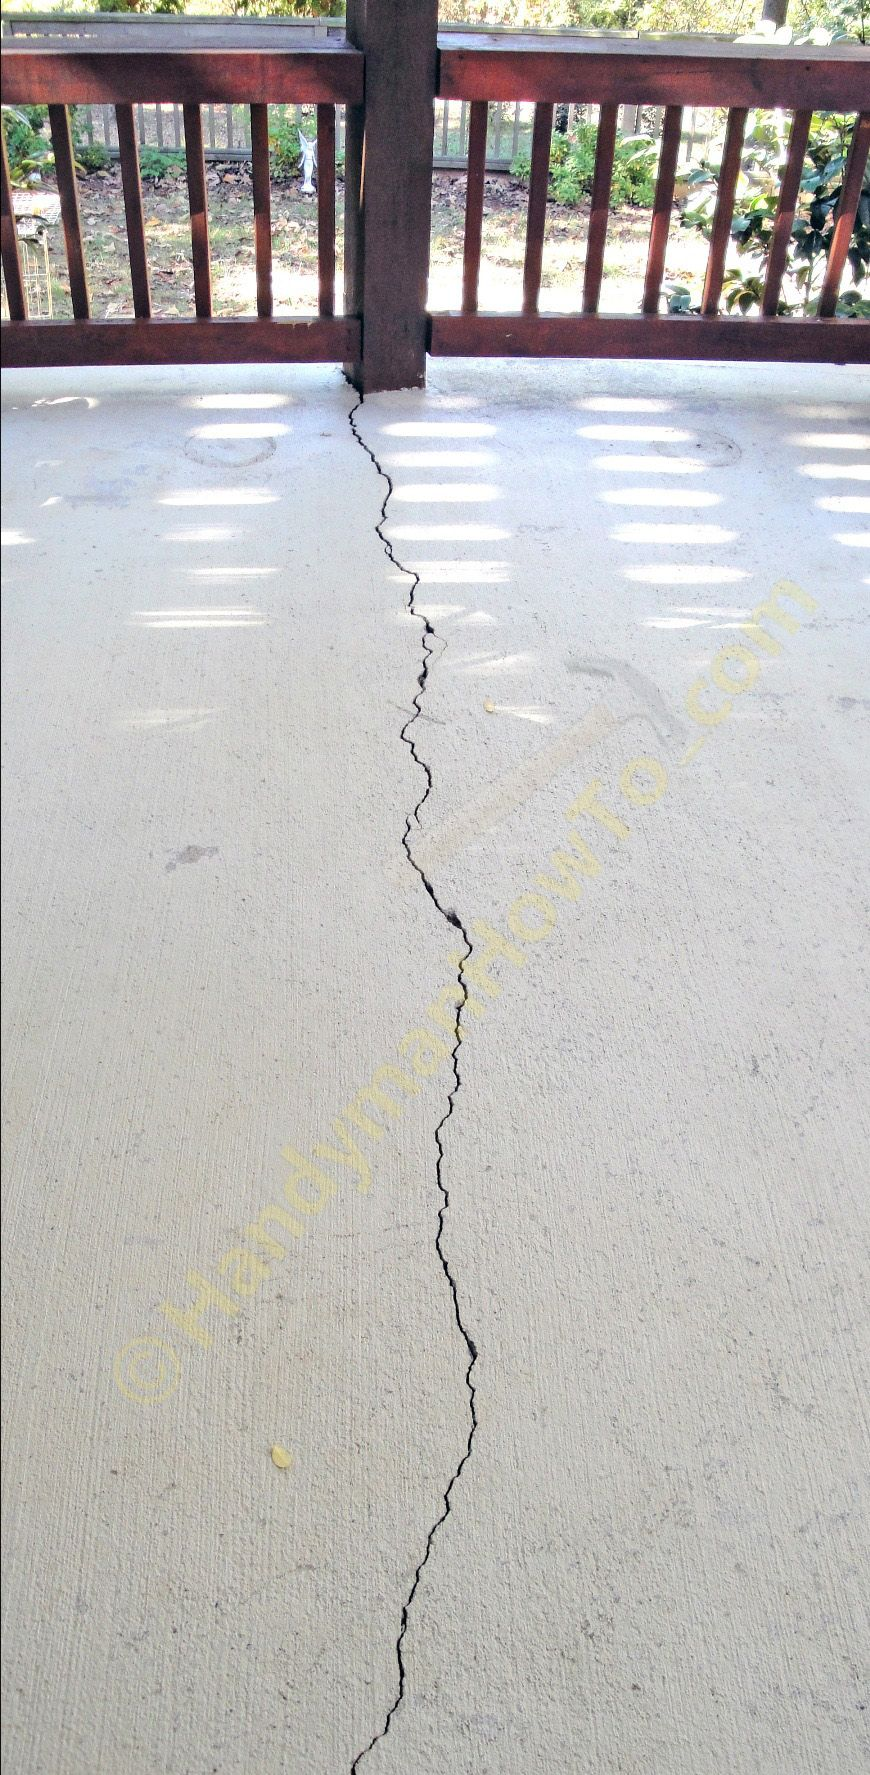 Fix Your Cracked Concrete Patio Slab Yourself Outdoor Living Patio Walkway Cement Cracked Diy Fix Pool Cracked Patio Repair Concrete Patio Patio Slabs